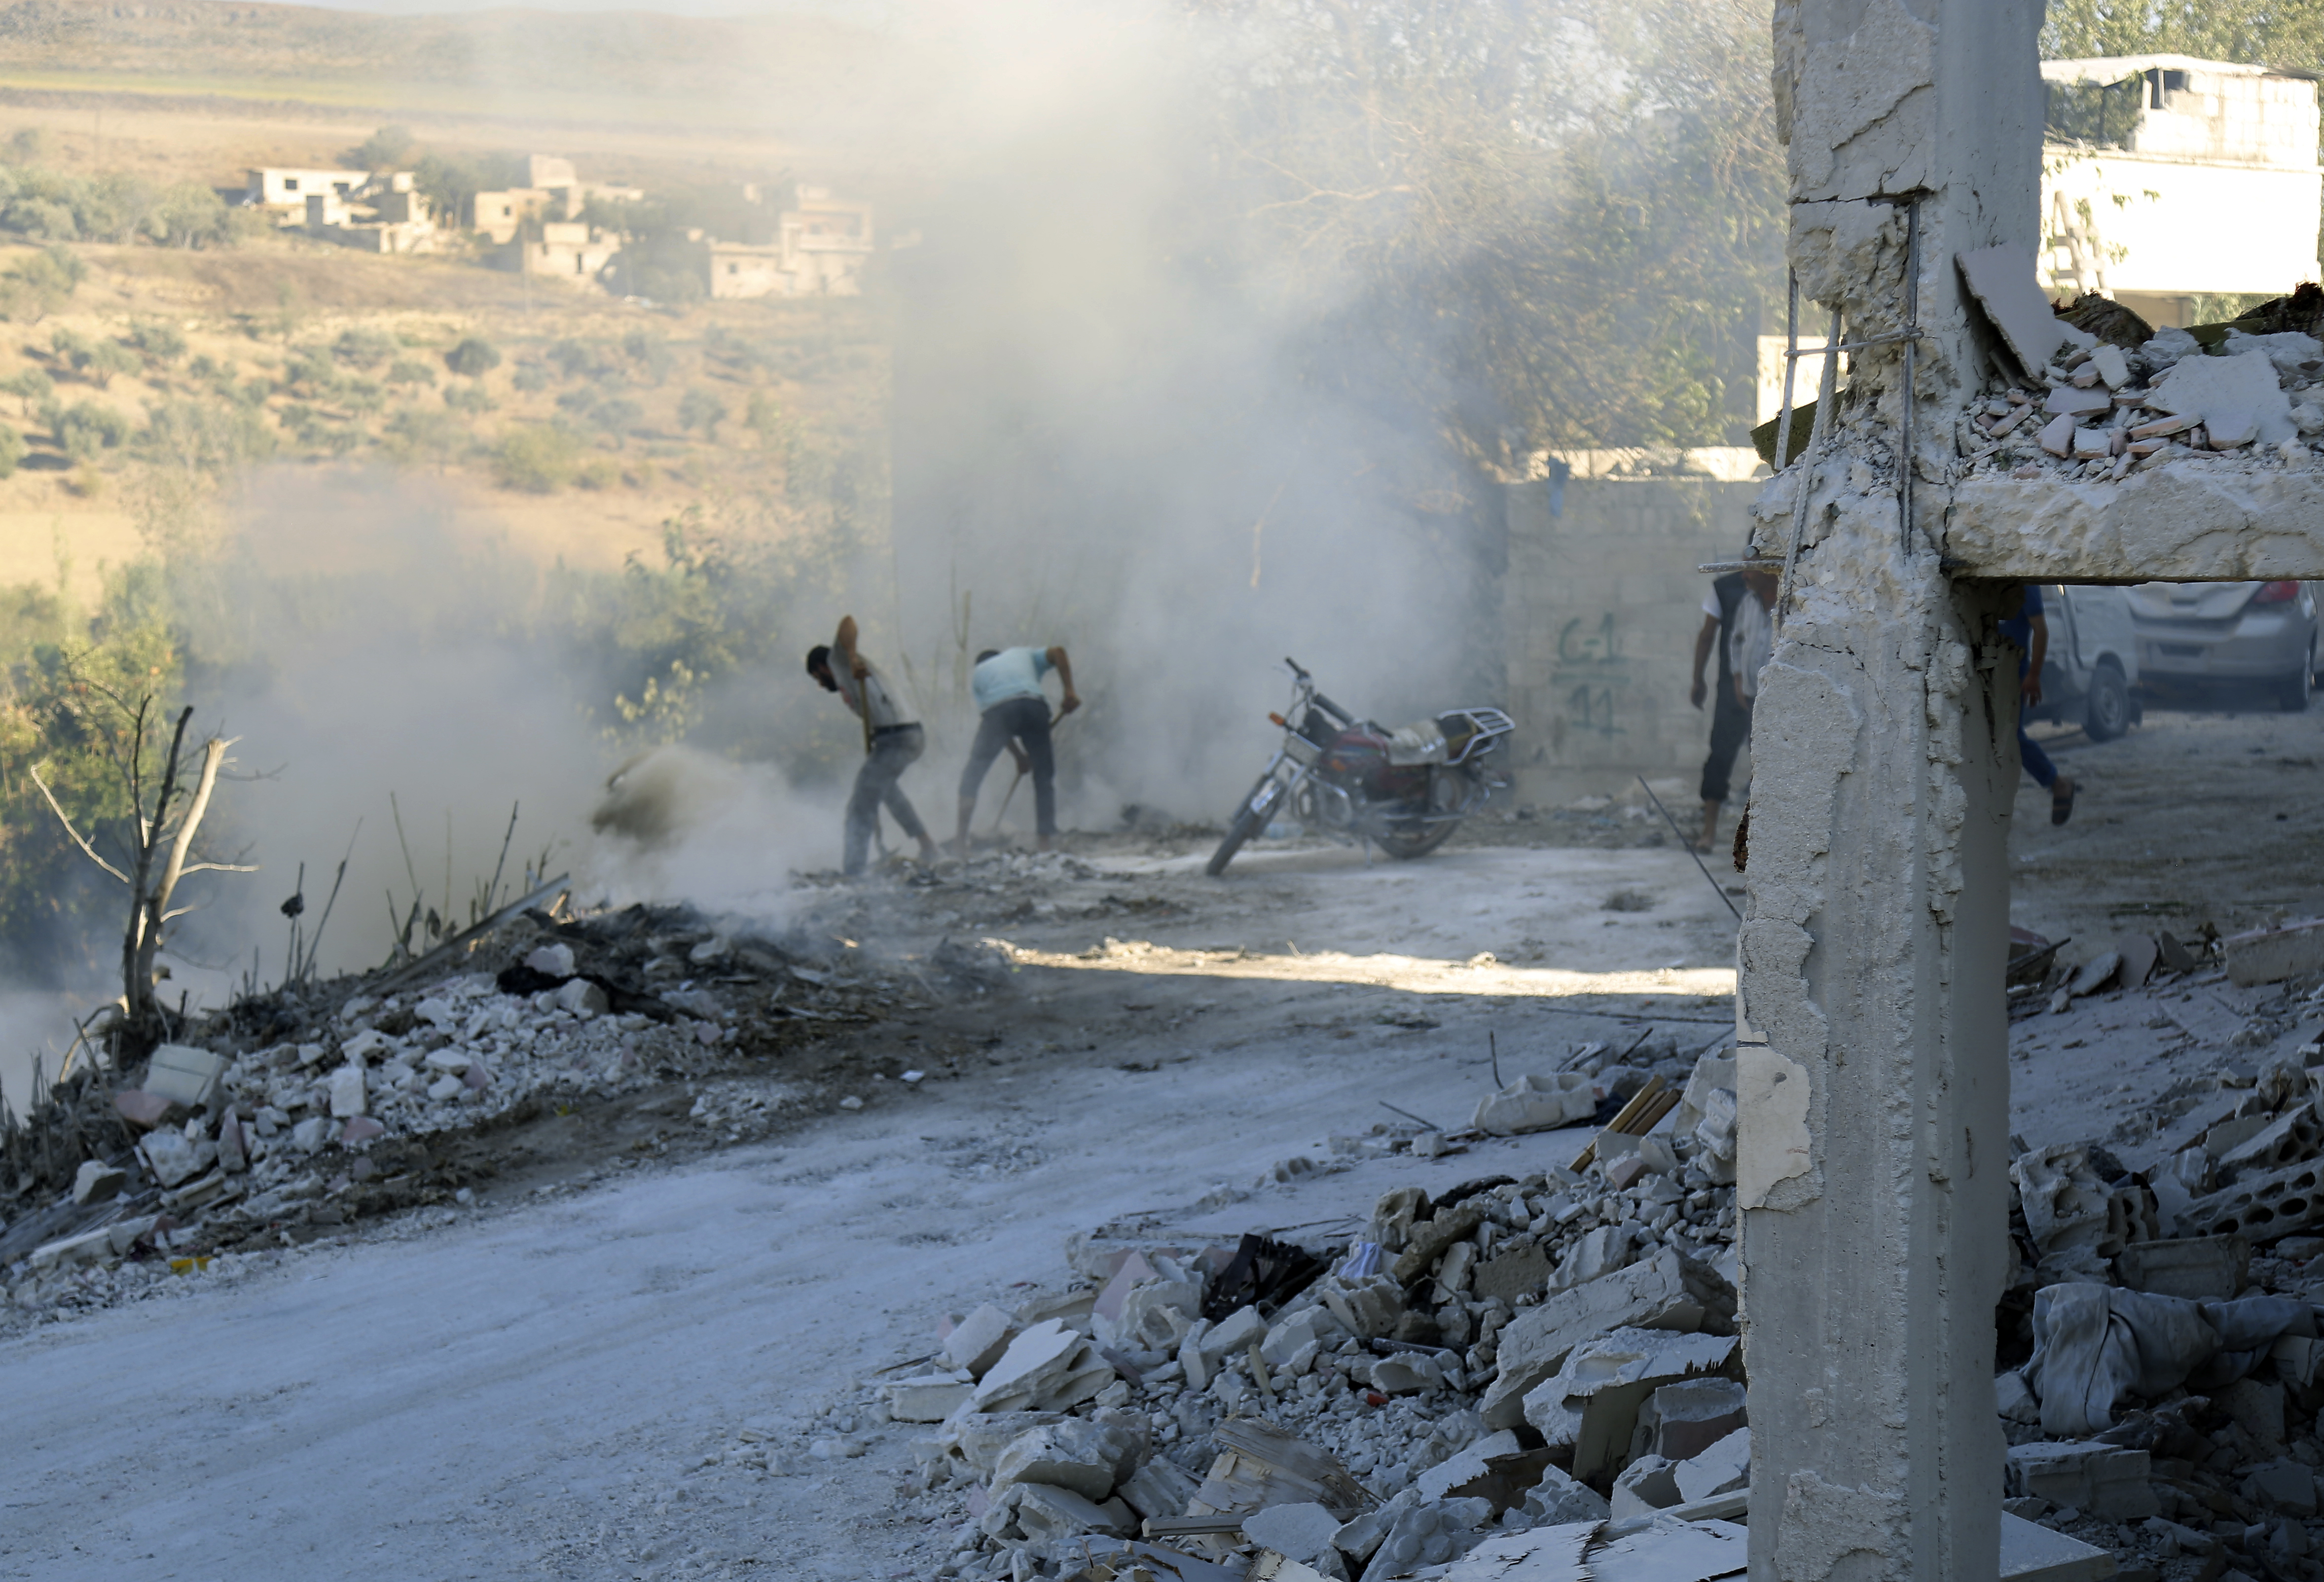 Syrians use dirt to put out a fire at the scene of a reported airstrike in the district of Jisr al-Shughur, in the Idlib province, Sept. 4, 2018.